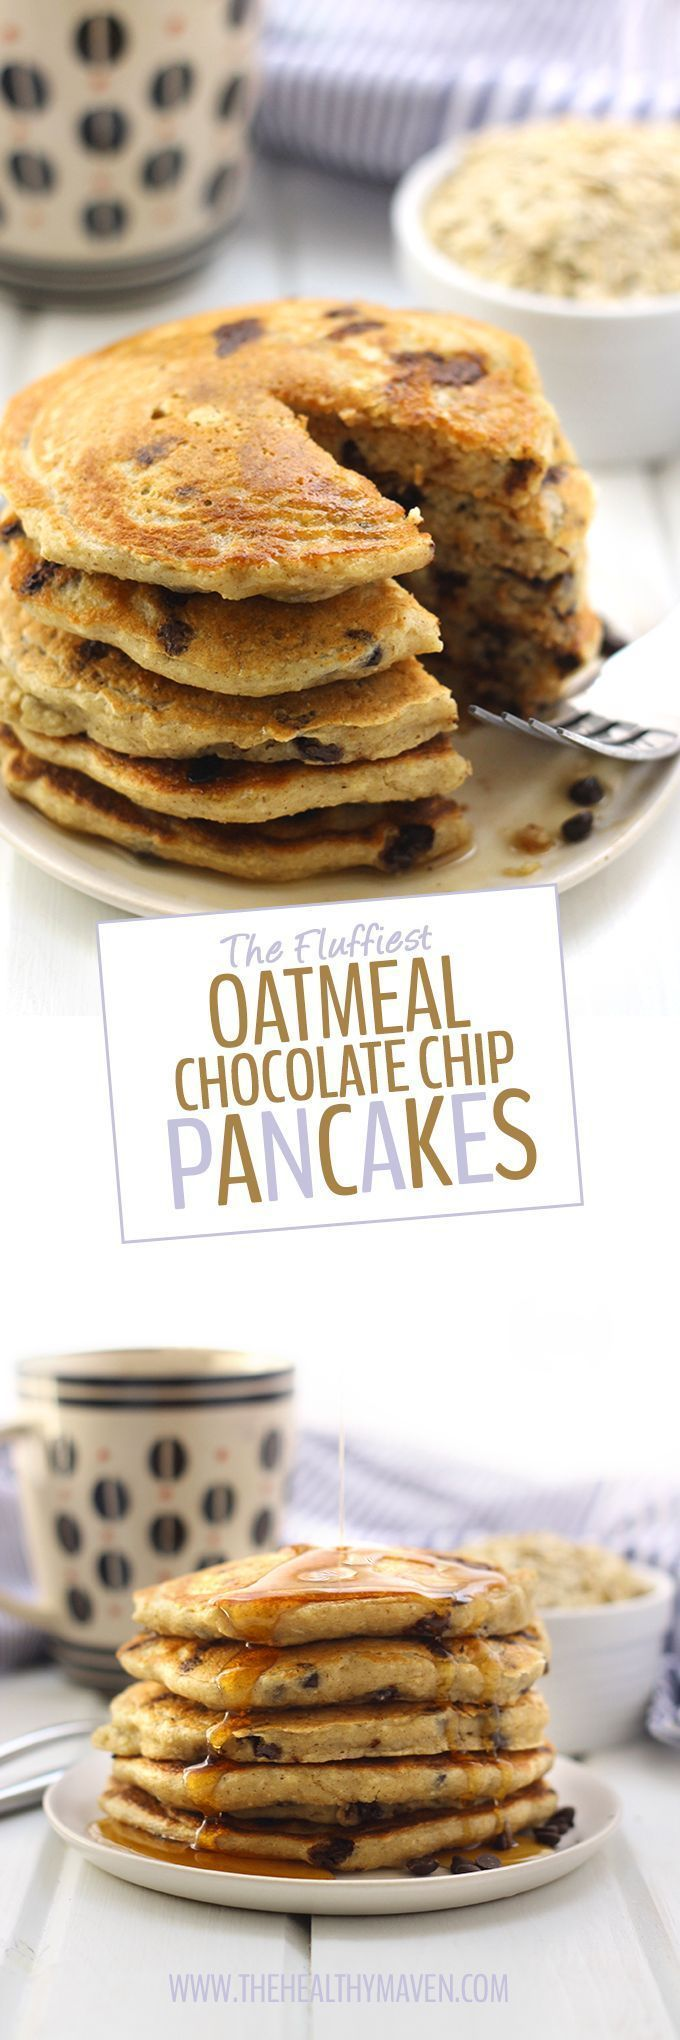 Oatmeal meets pancakes with The Fluffiest Oatmeal Chocolate Chip Pancakes. These pancakes are gluten-free, refined sugar-free and high in protein but are the most delicious, fluffiest pancakes you will ever eat. They will quickly become a weekend brunch r